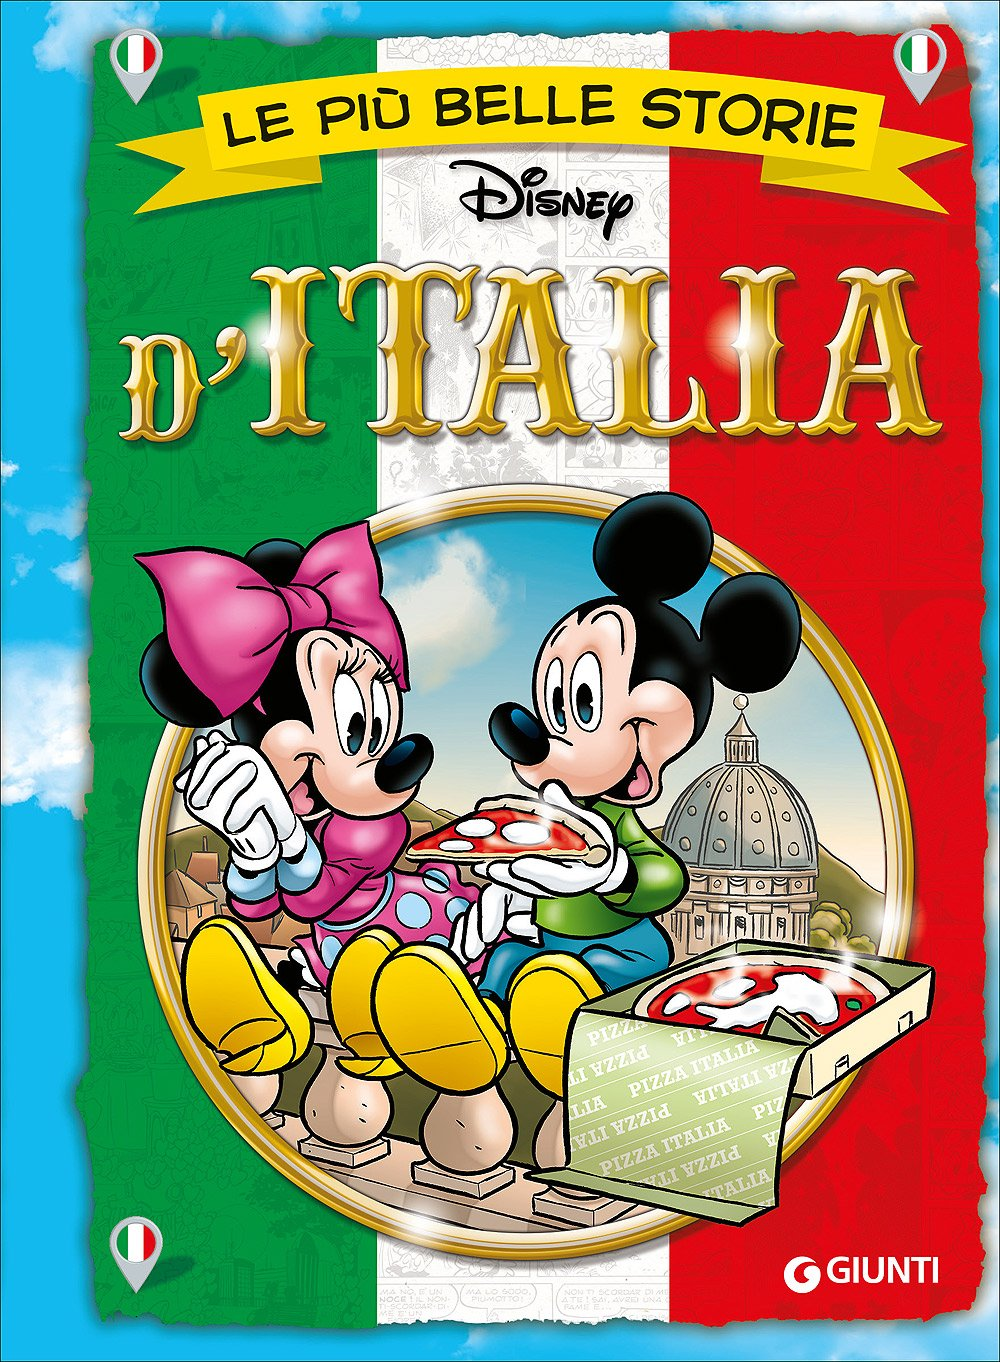 Cover Le più belle storie Disney 30